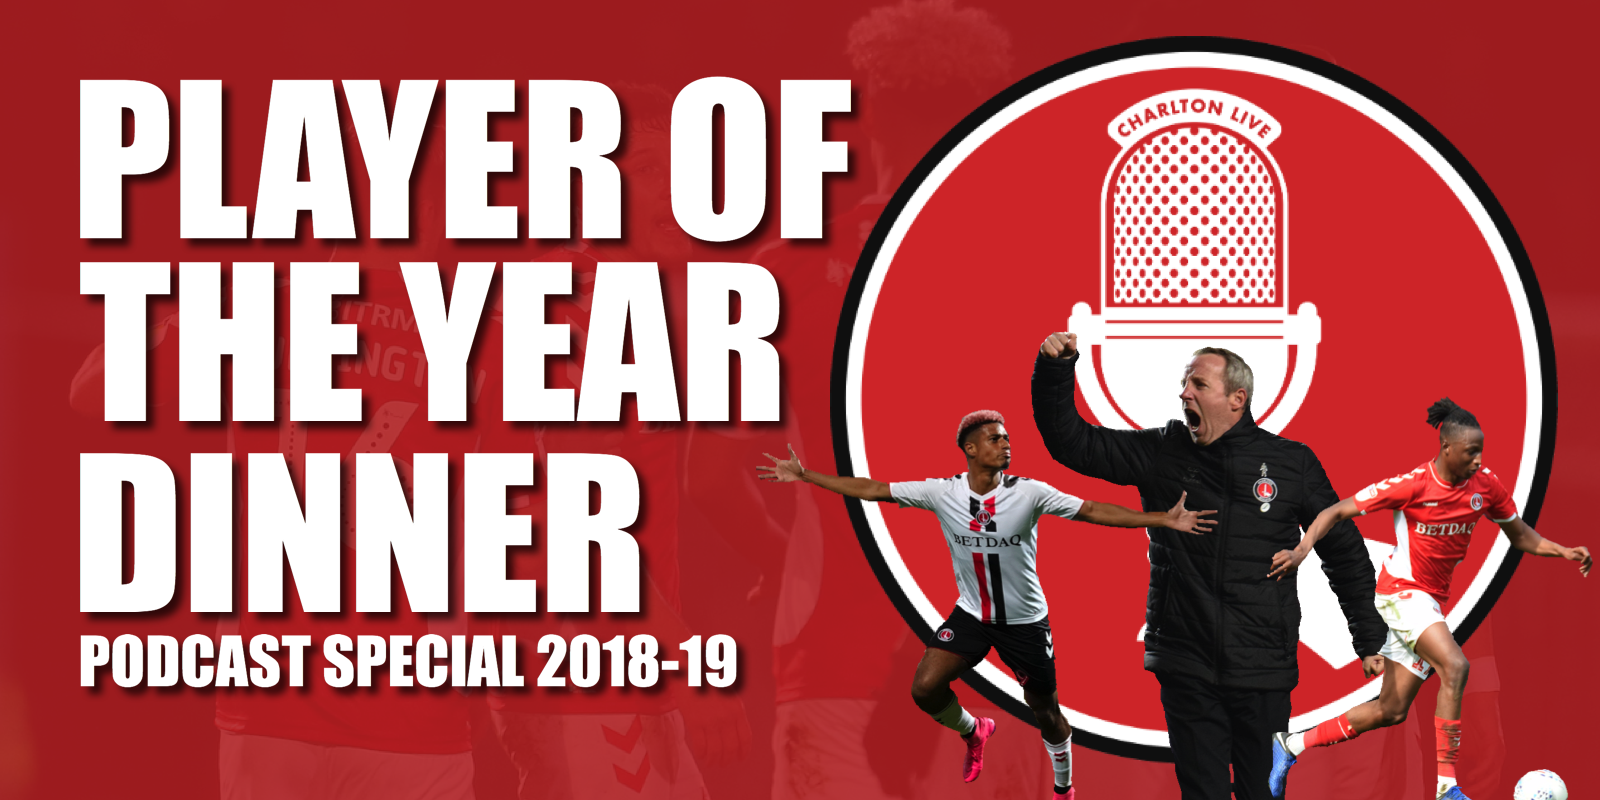 Join the Charlton Live team as we record our annual show from the Player of the Year dinner – packed with exclusive extended interviews with […]